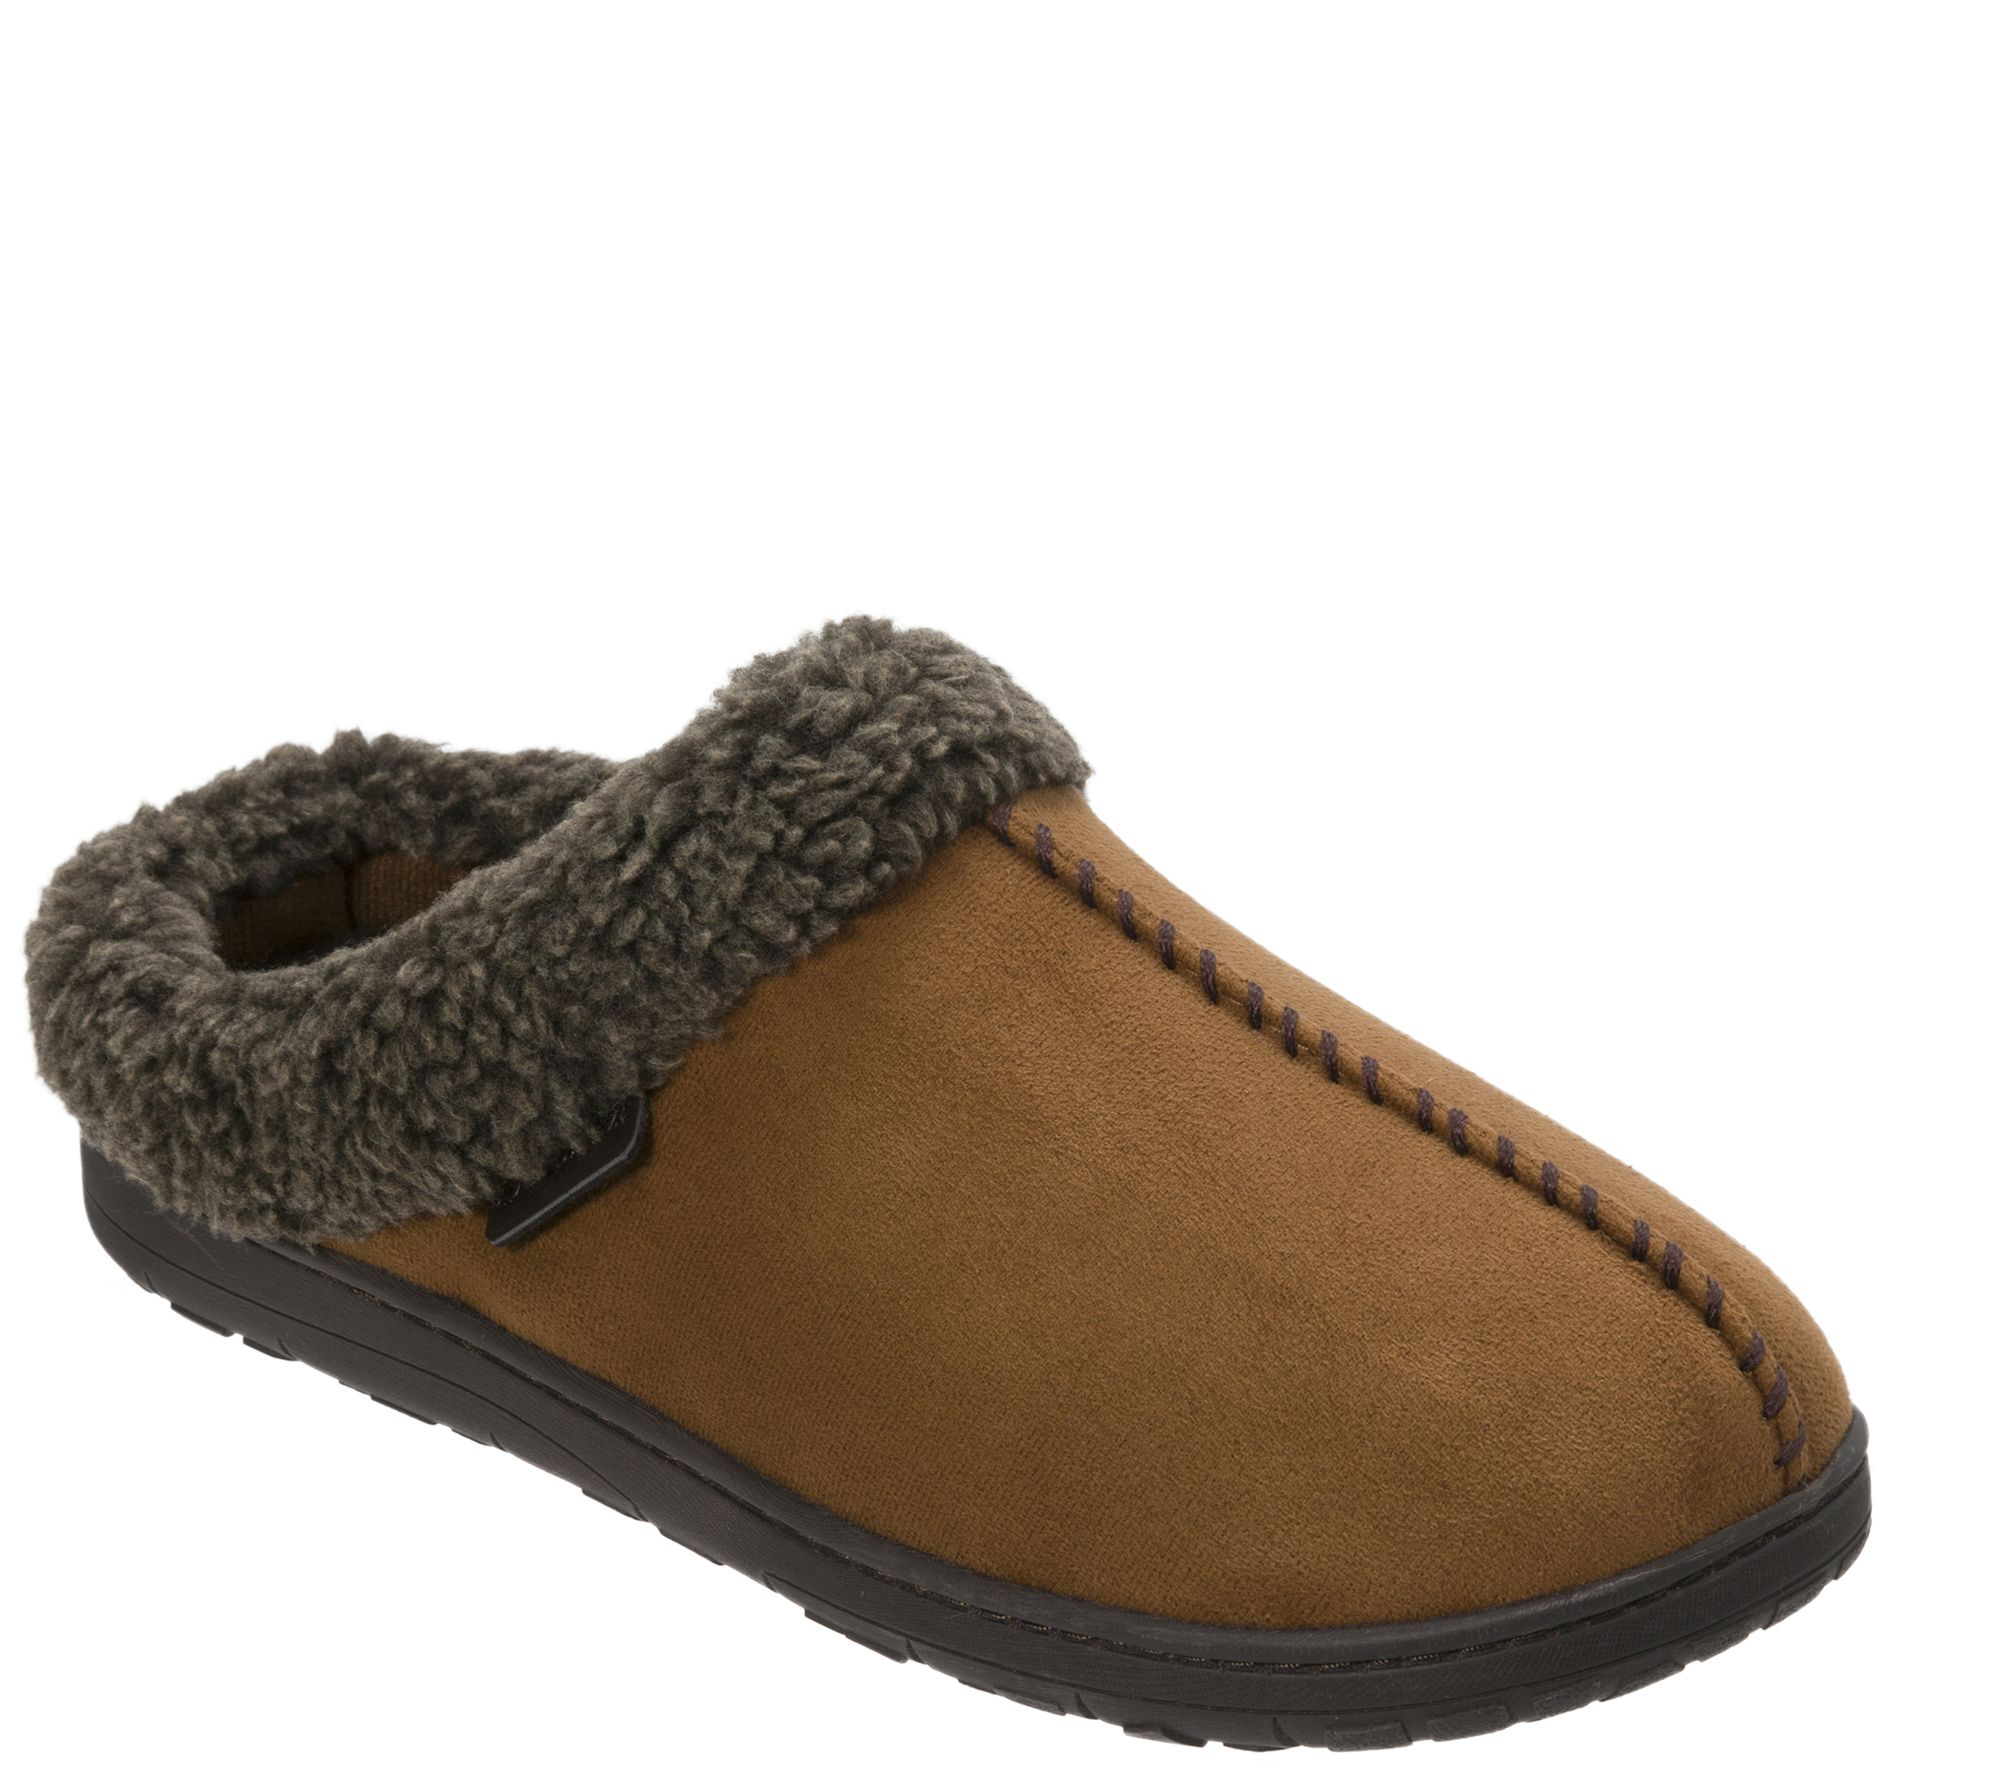 6048a0243d4 Dearfoams Men s Microsuede Slipper Clogs with Whipstitch — QVC.com